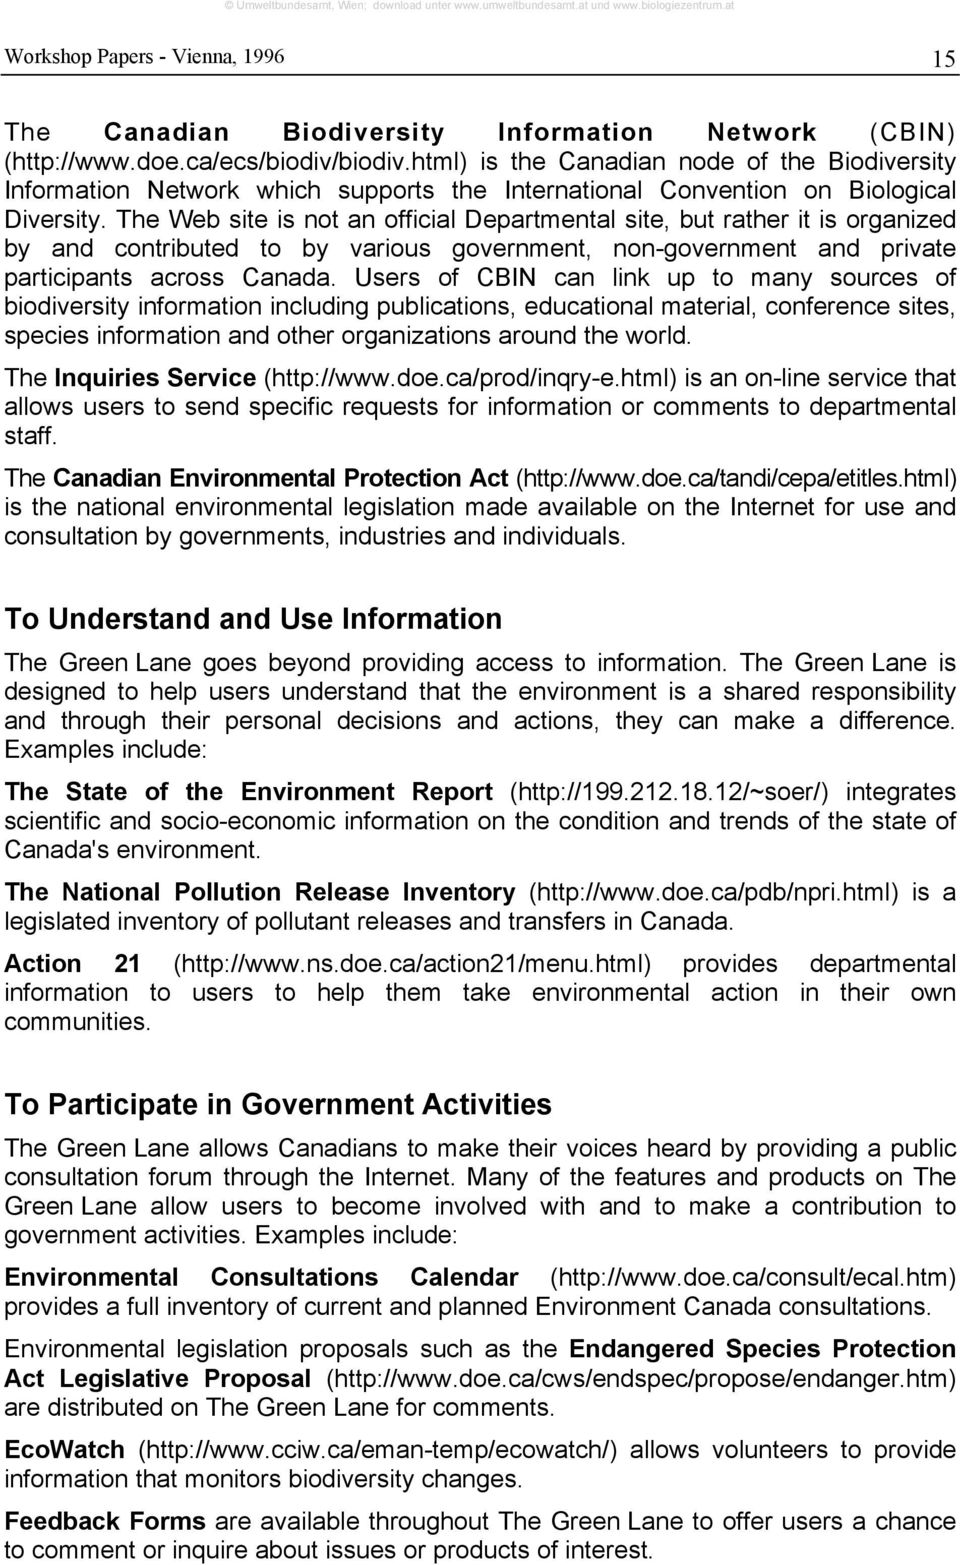 The Web site is not an official Departmental site, but rather it is organized by and contributed to by various government, non-government and private participants across Canada.